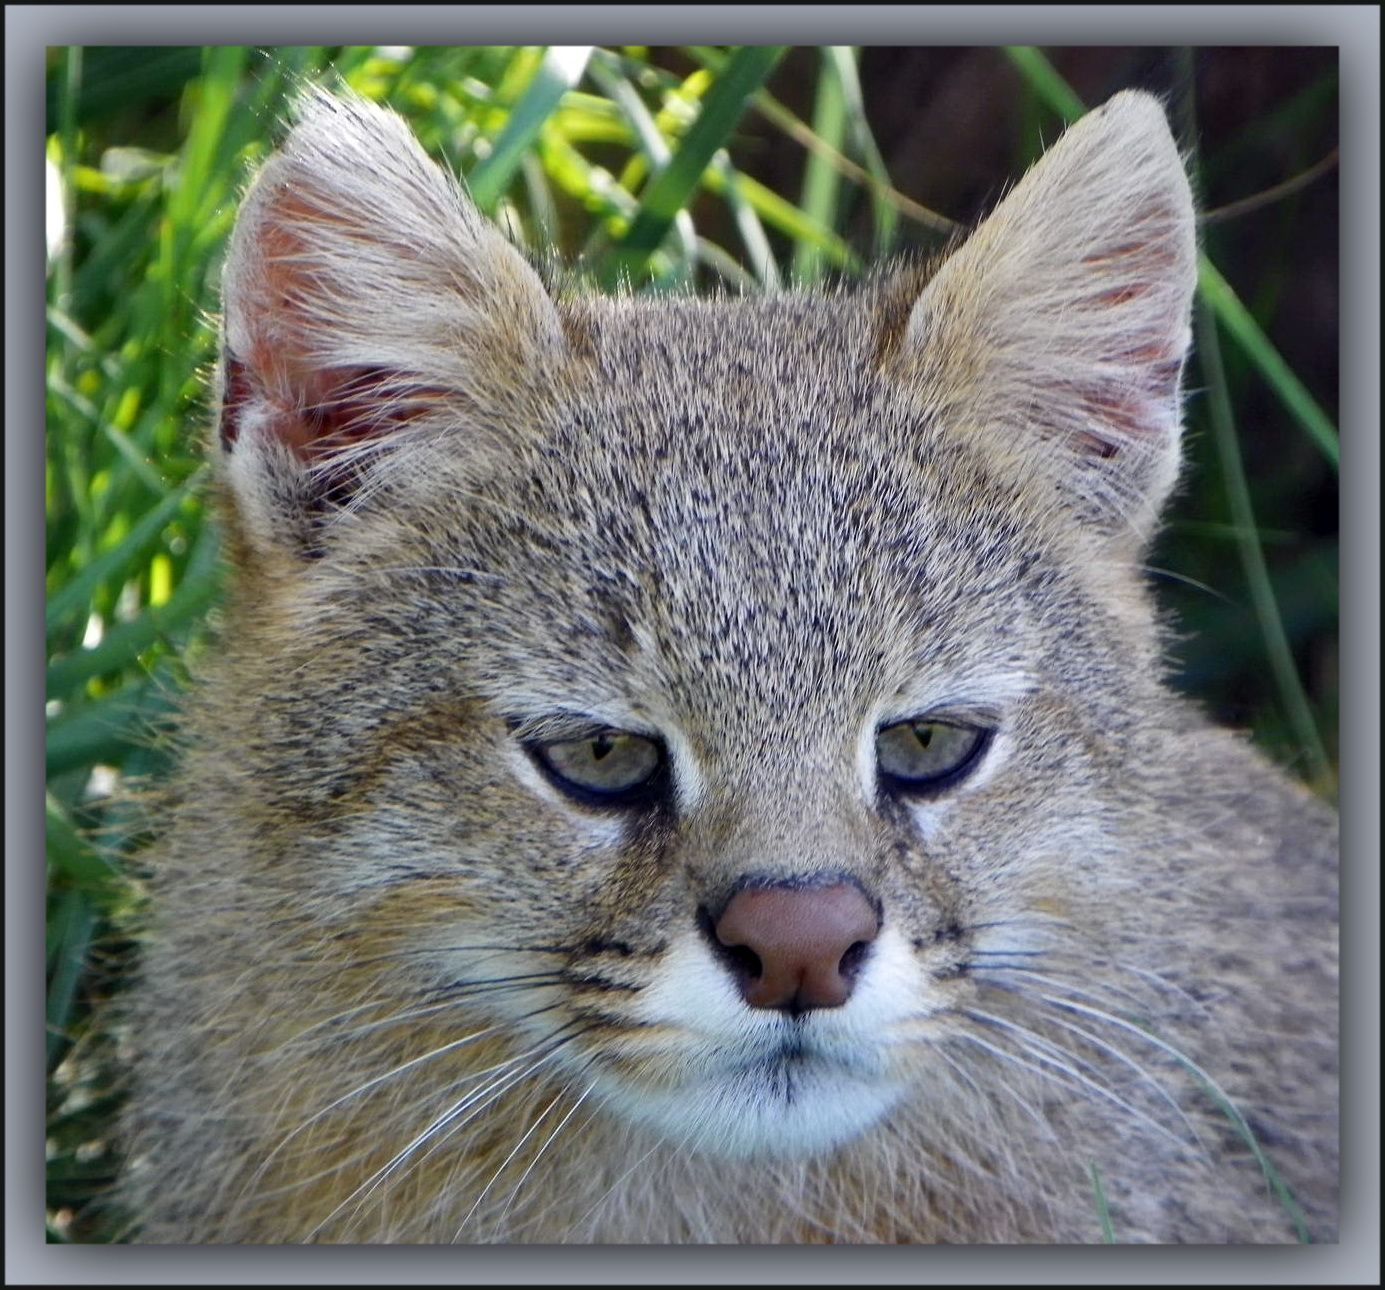 Pampas Cat (Leopardus pajeros) a small cat native to